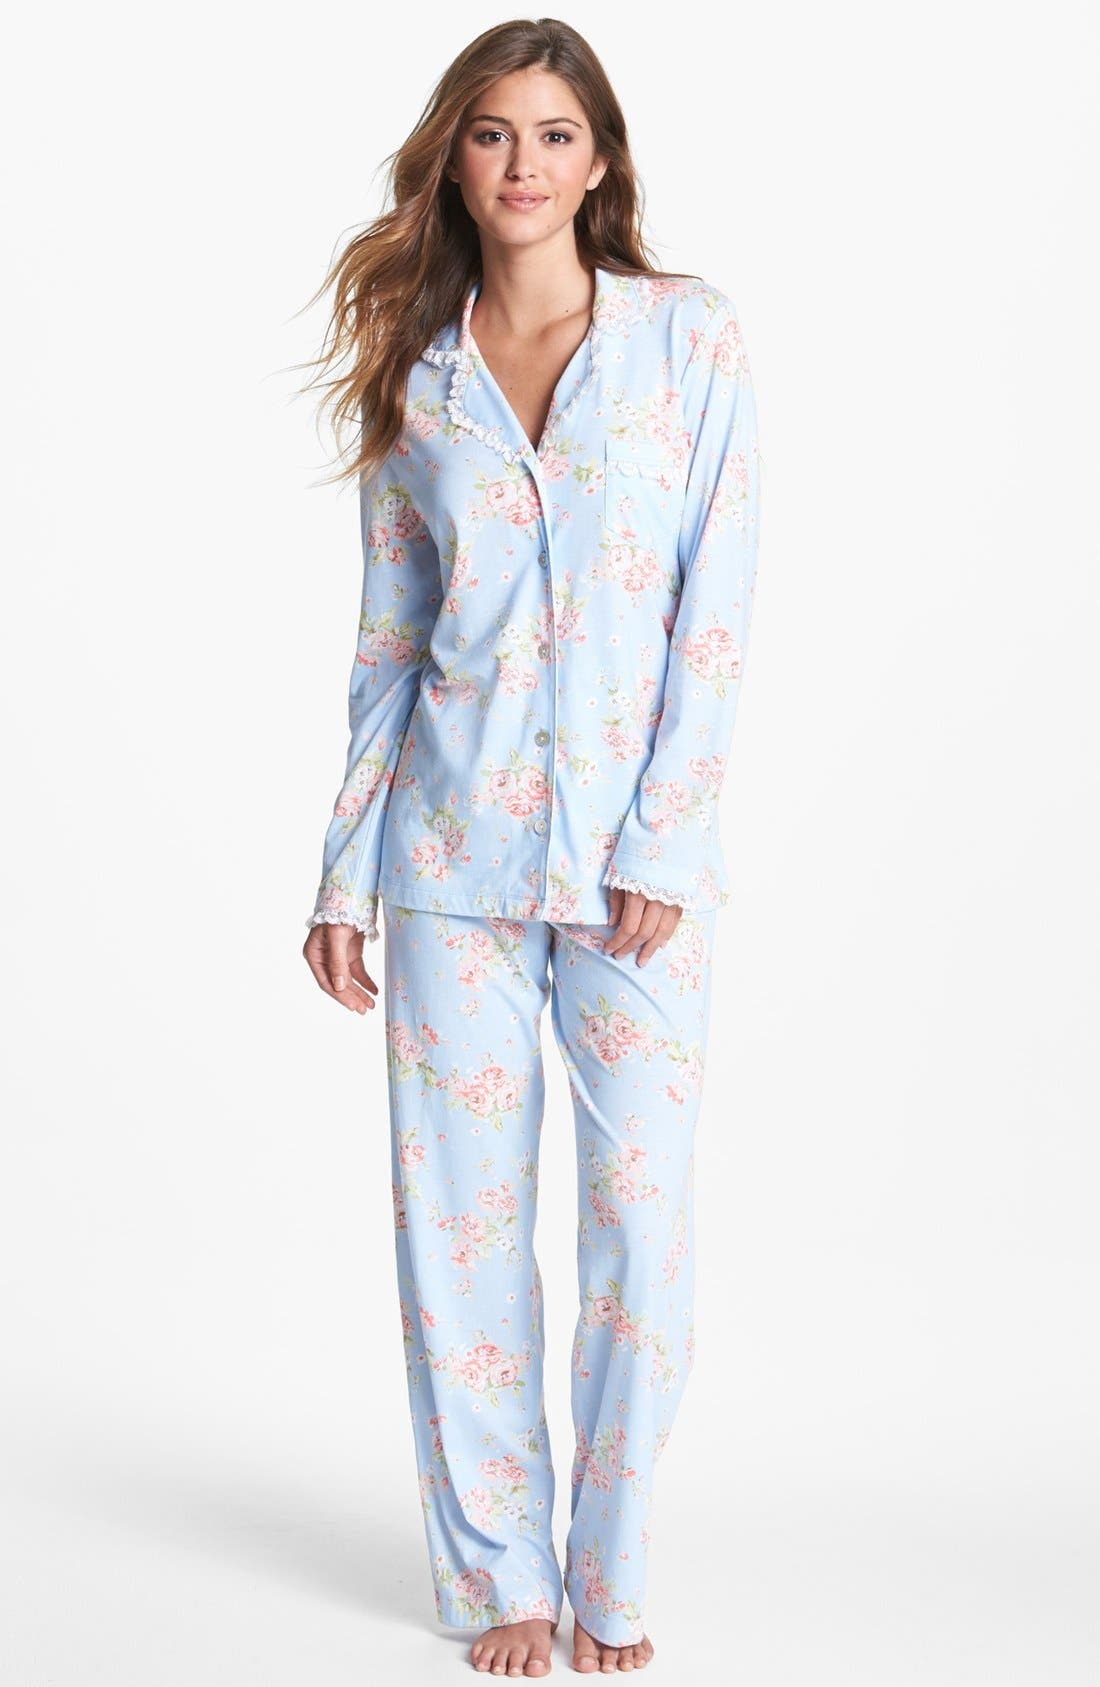 Alternate Image 1 Selected - Carole Hochman Designs 'Enchanted Gardens' Pajamas